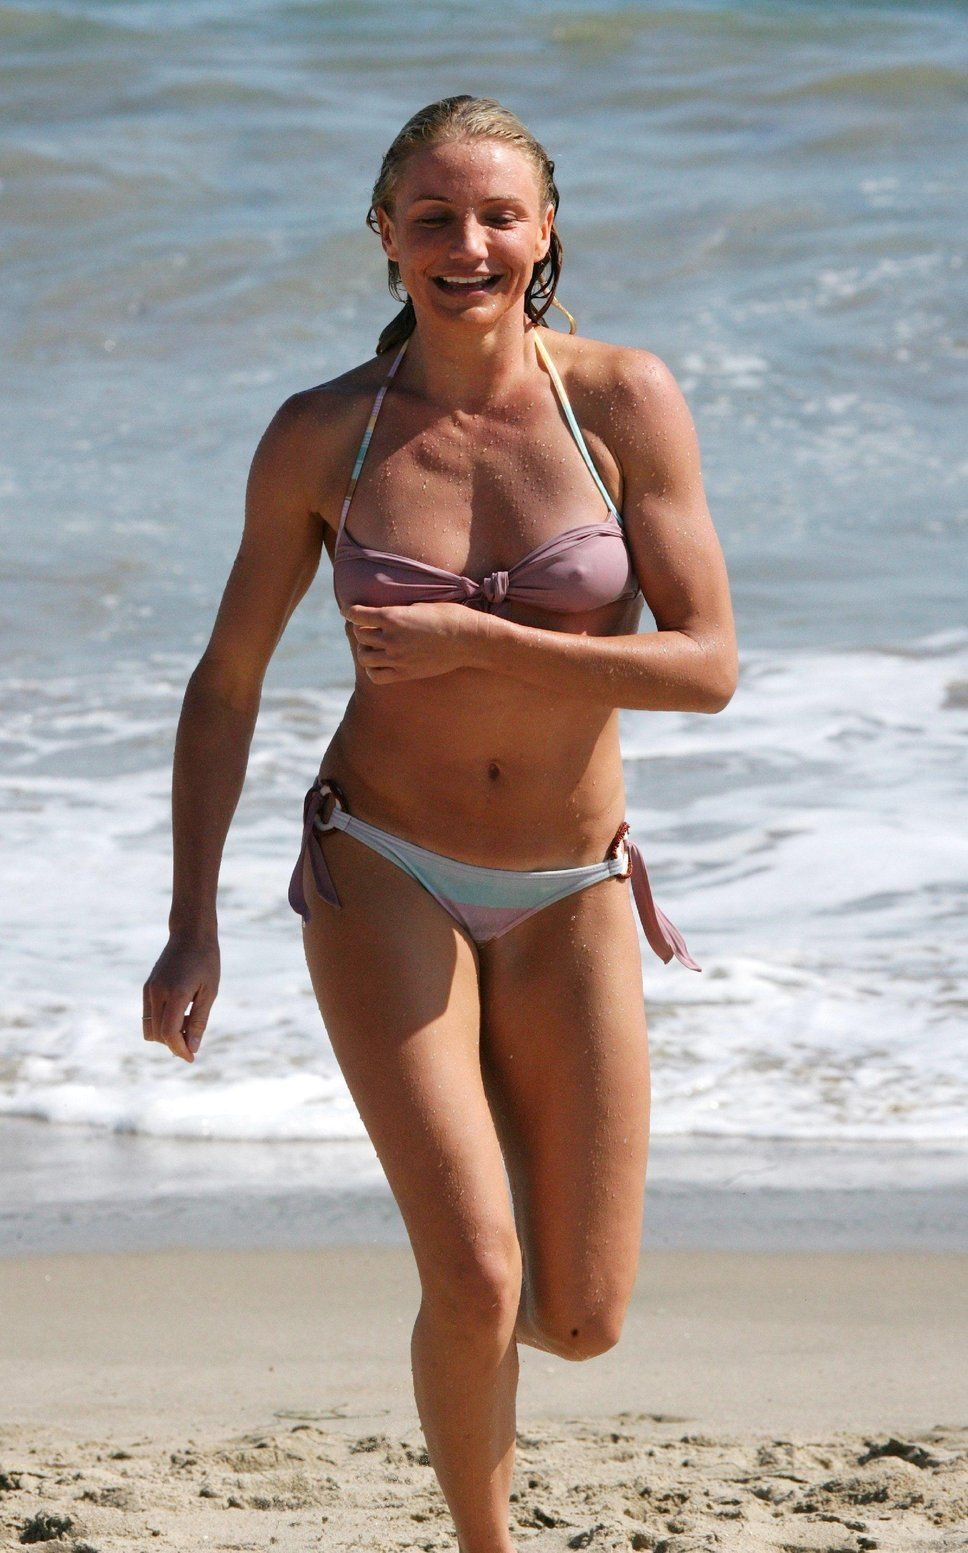 Cameron diaz see through bikini here